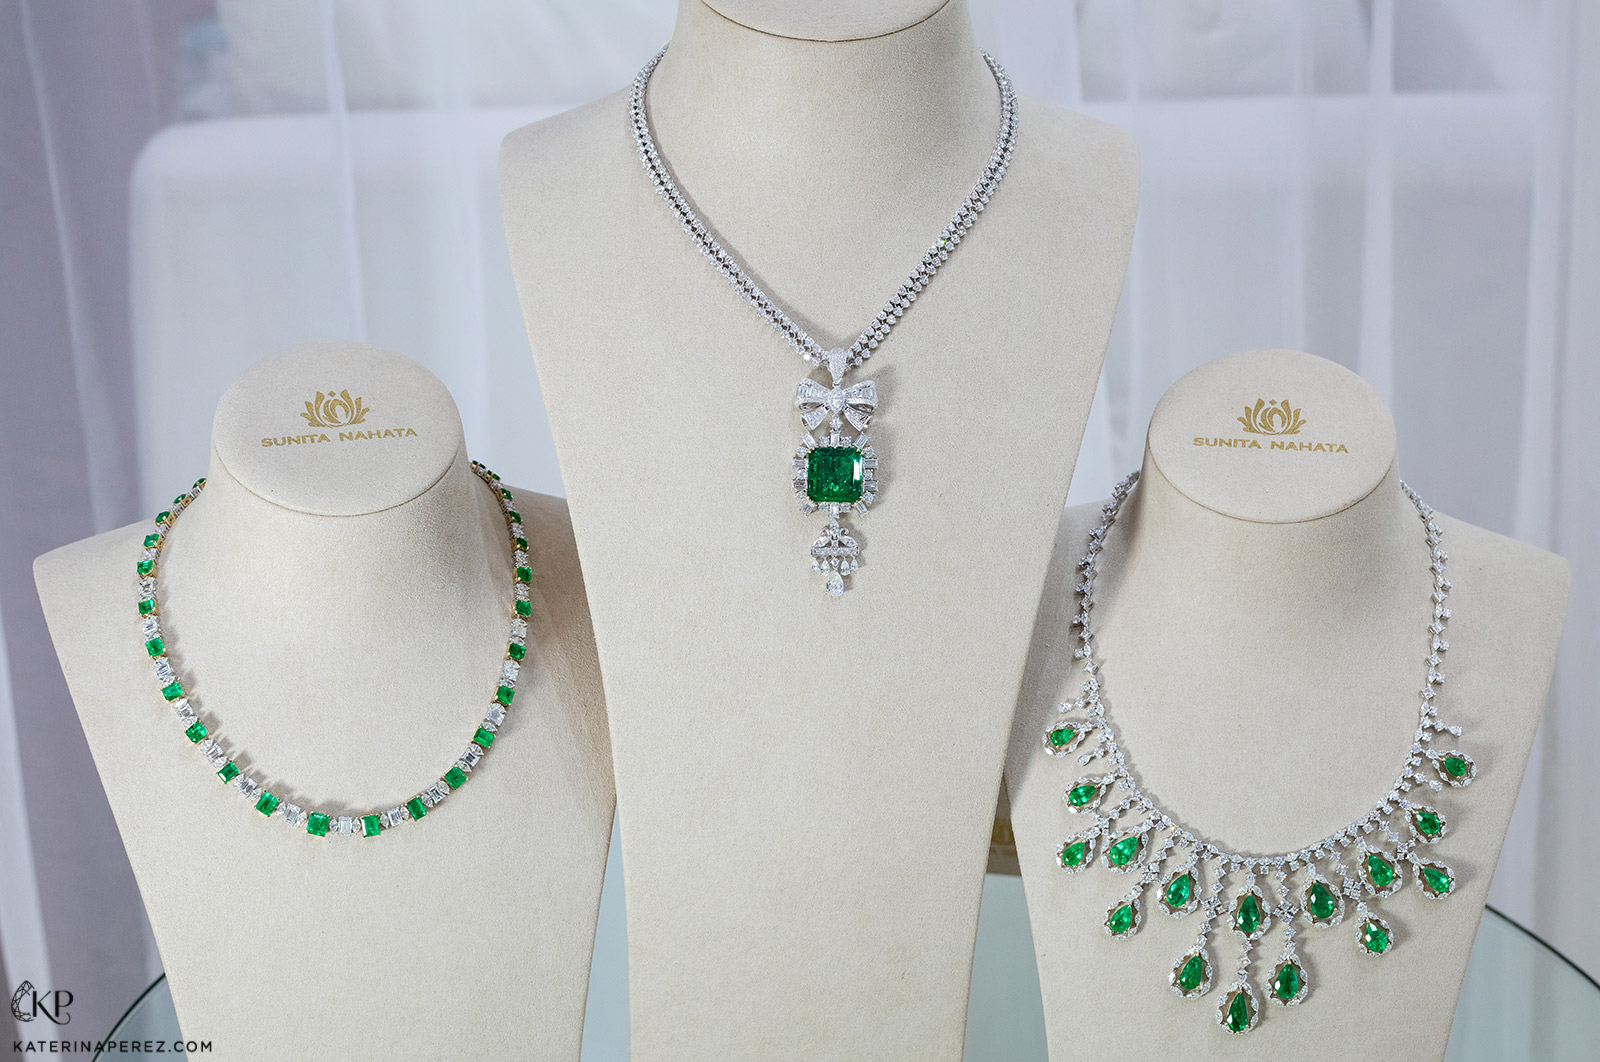 Sunita Nahata 'Regalia' collection (from left to right) single strand necklace with 19.70ct Colombian emeralds and 16.20ct diamonds, 'Star' necklace with 22.31ct Colombian Muzo emerald and 9.53ct diamonds, and long drop necklace with 27.16ct Colombian emeralds and 32.21ct diamonds, all in 18k white gold